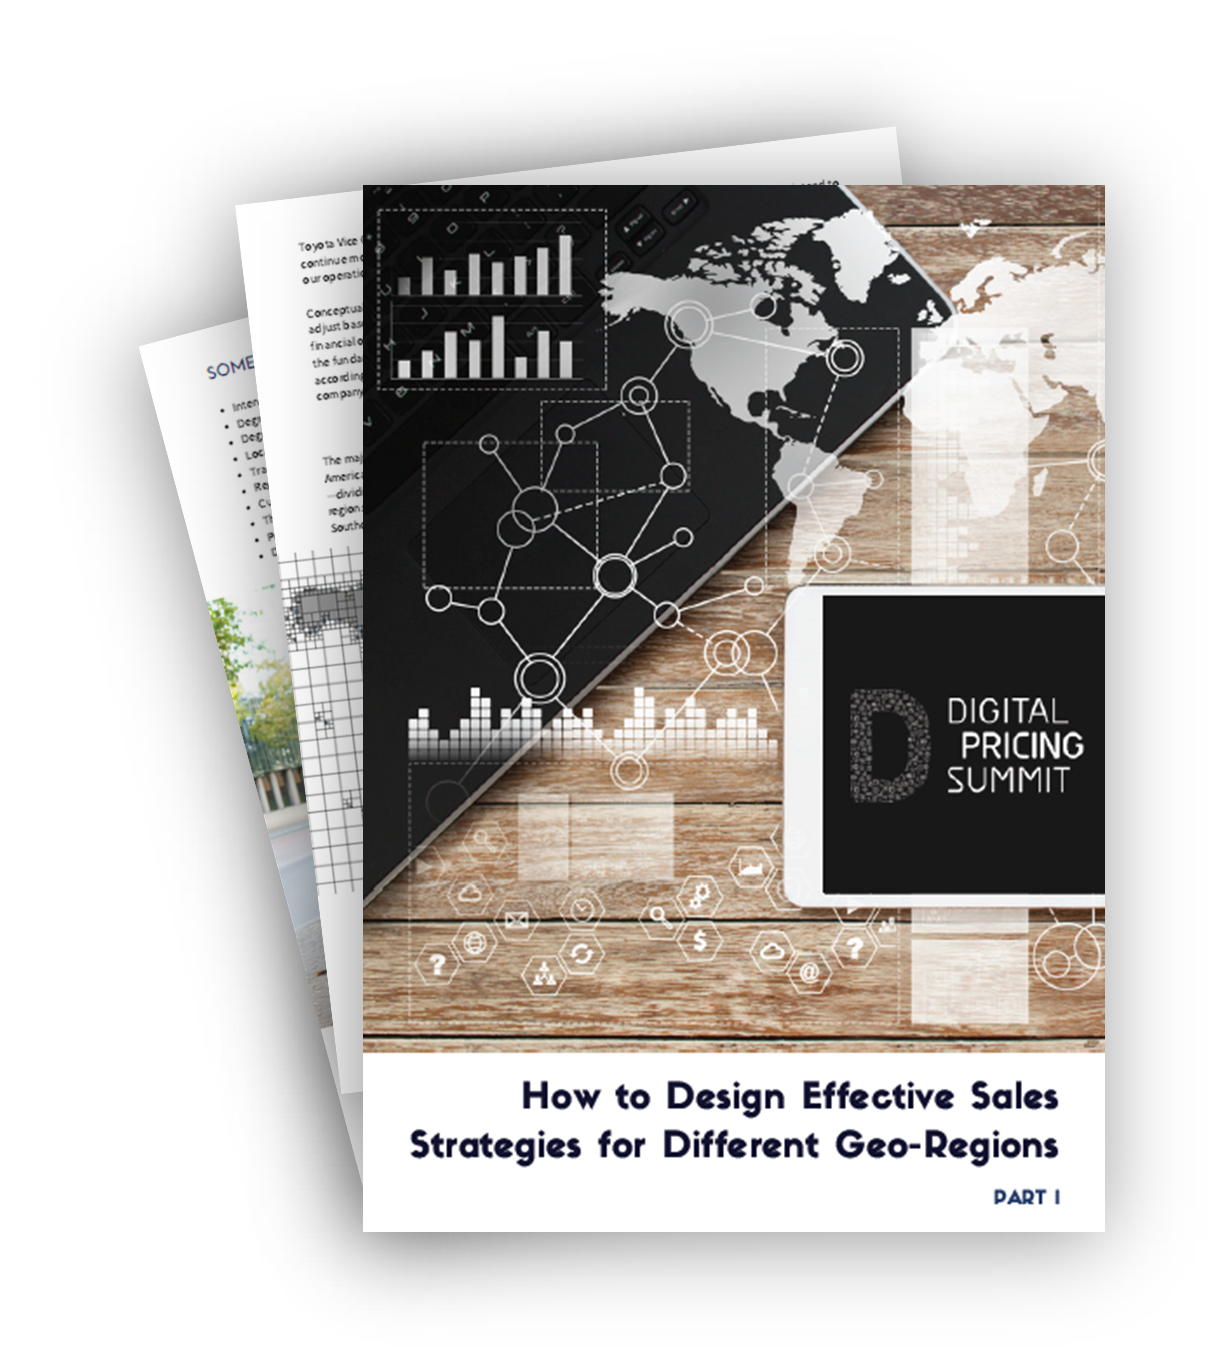 Effective sales strategies for different Geo-Regions